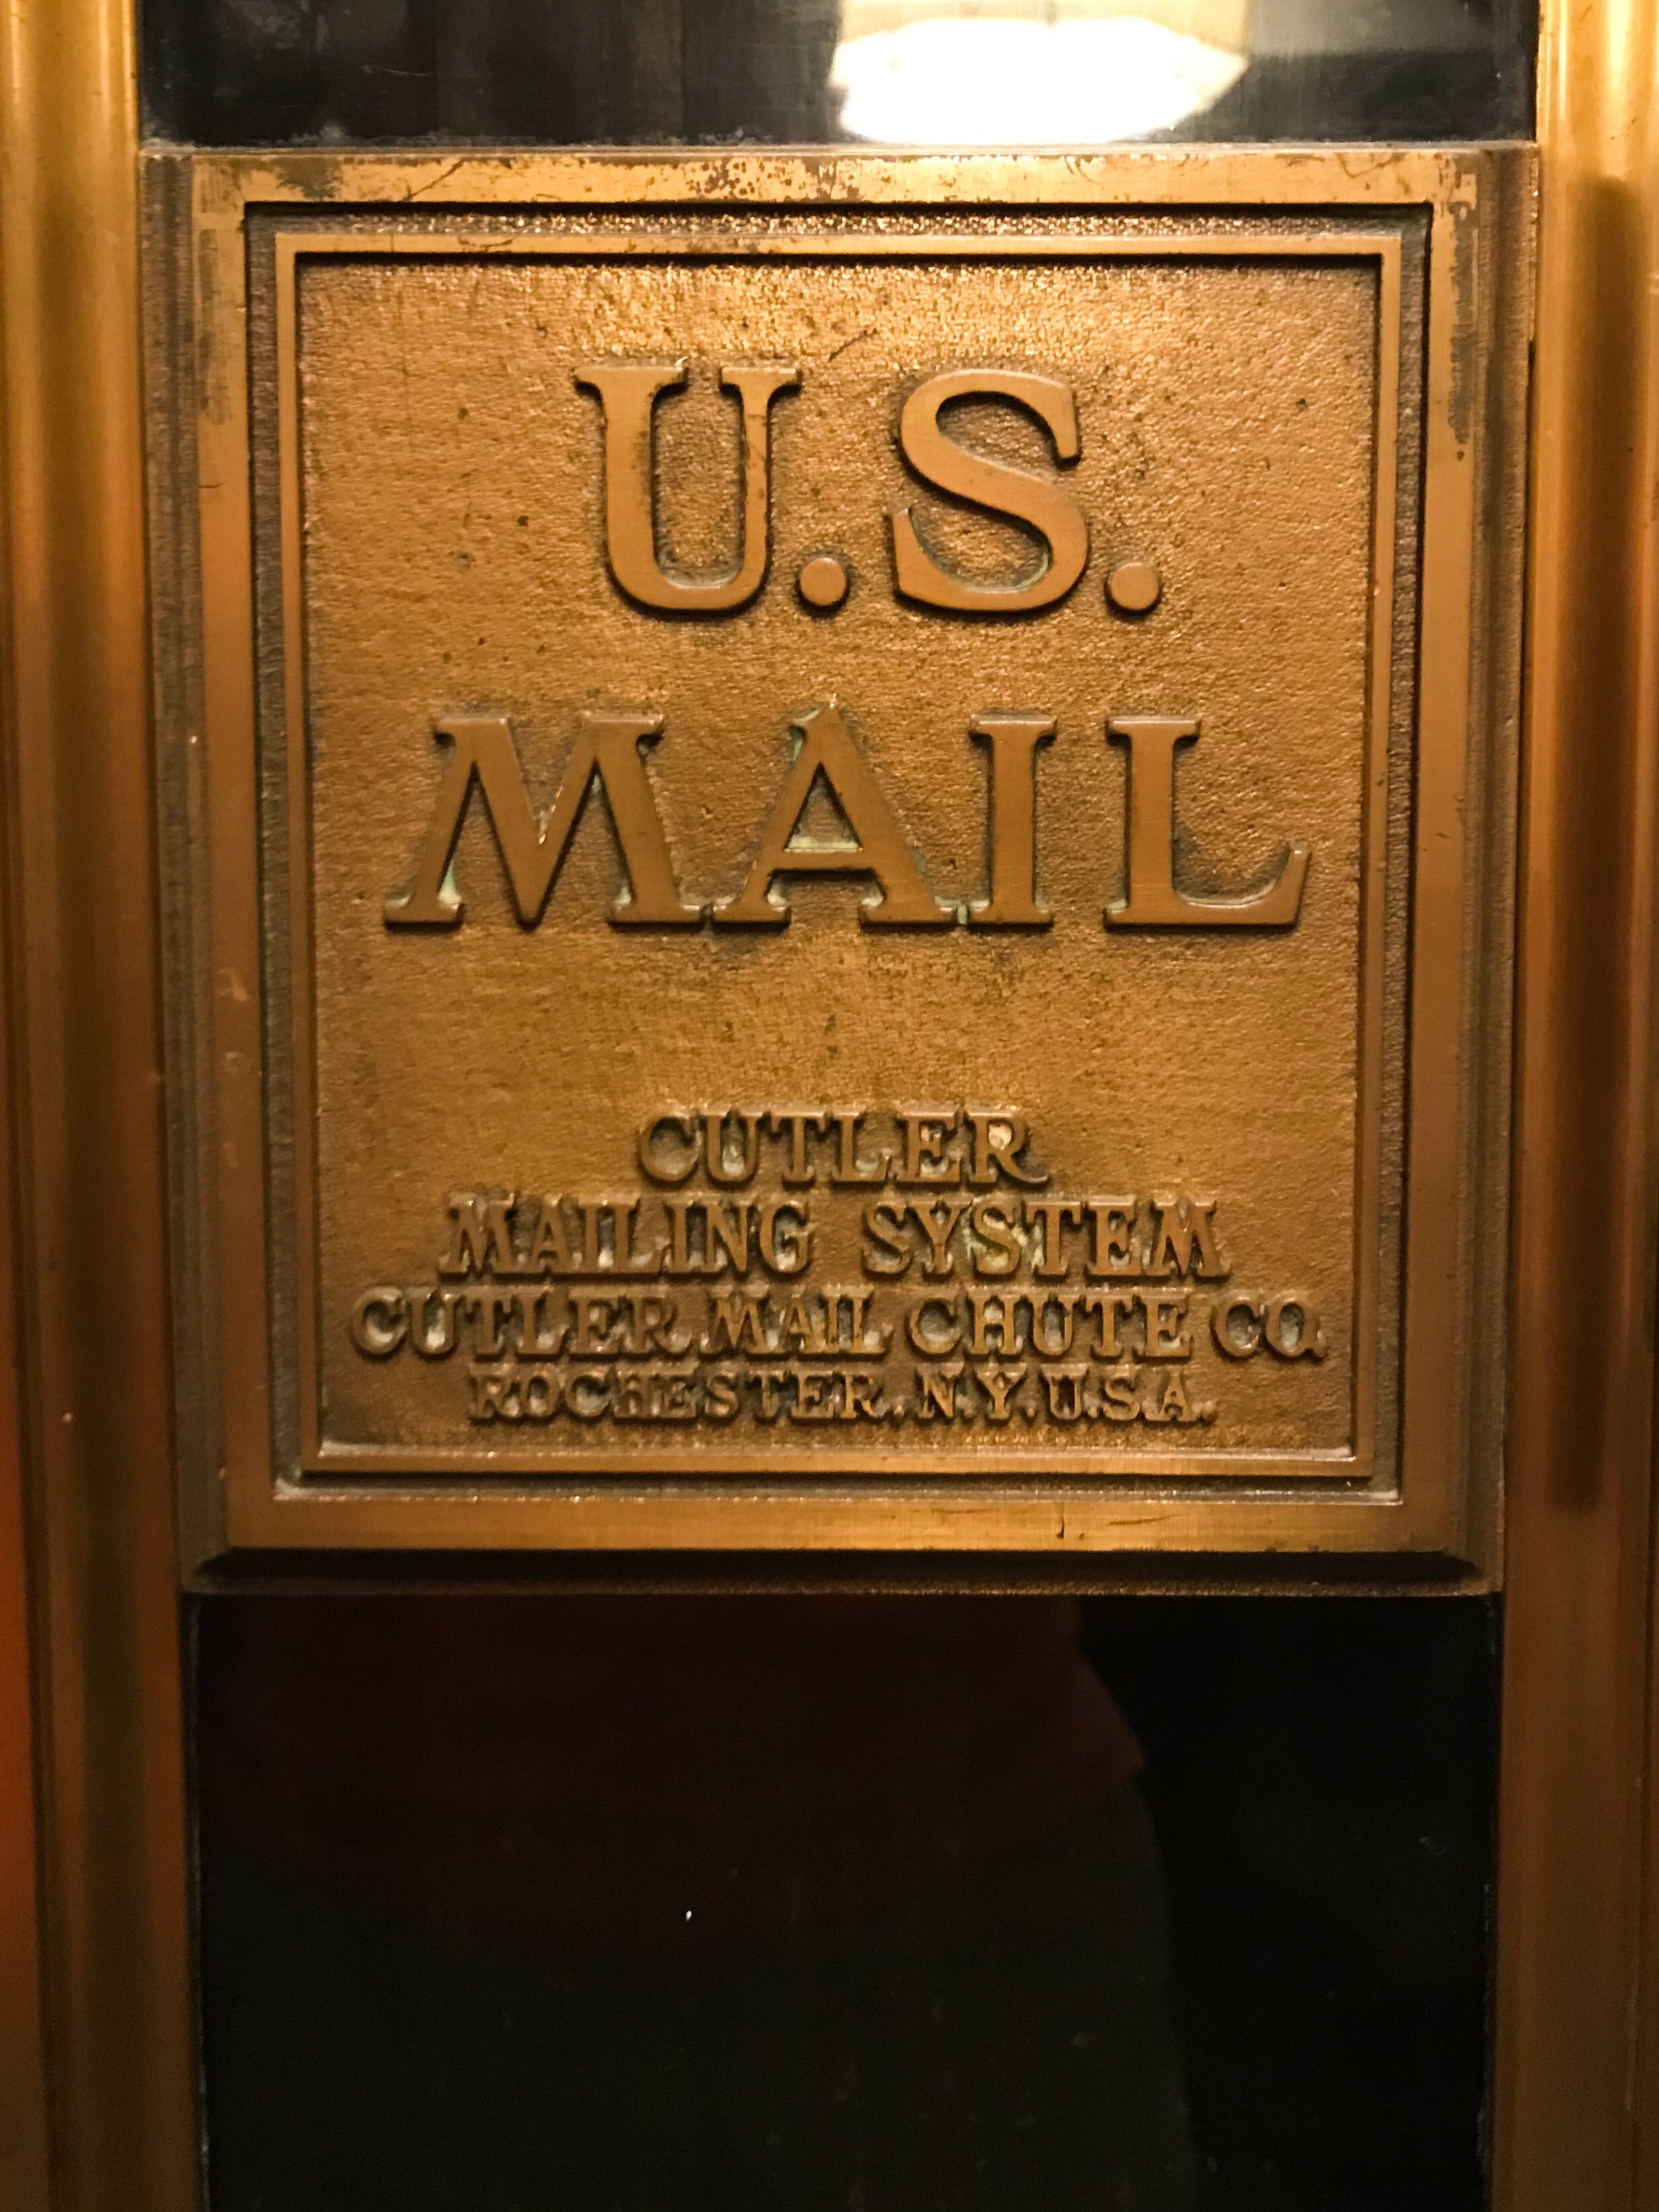 Some of the historic aspects of the hotel included an old mail chute.